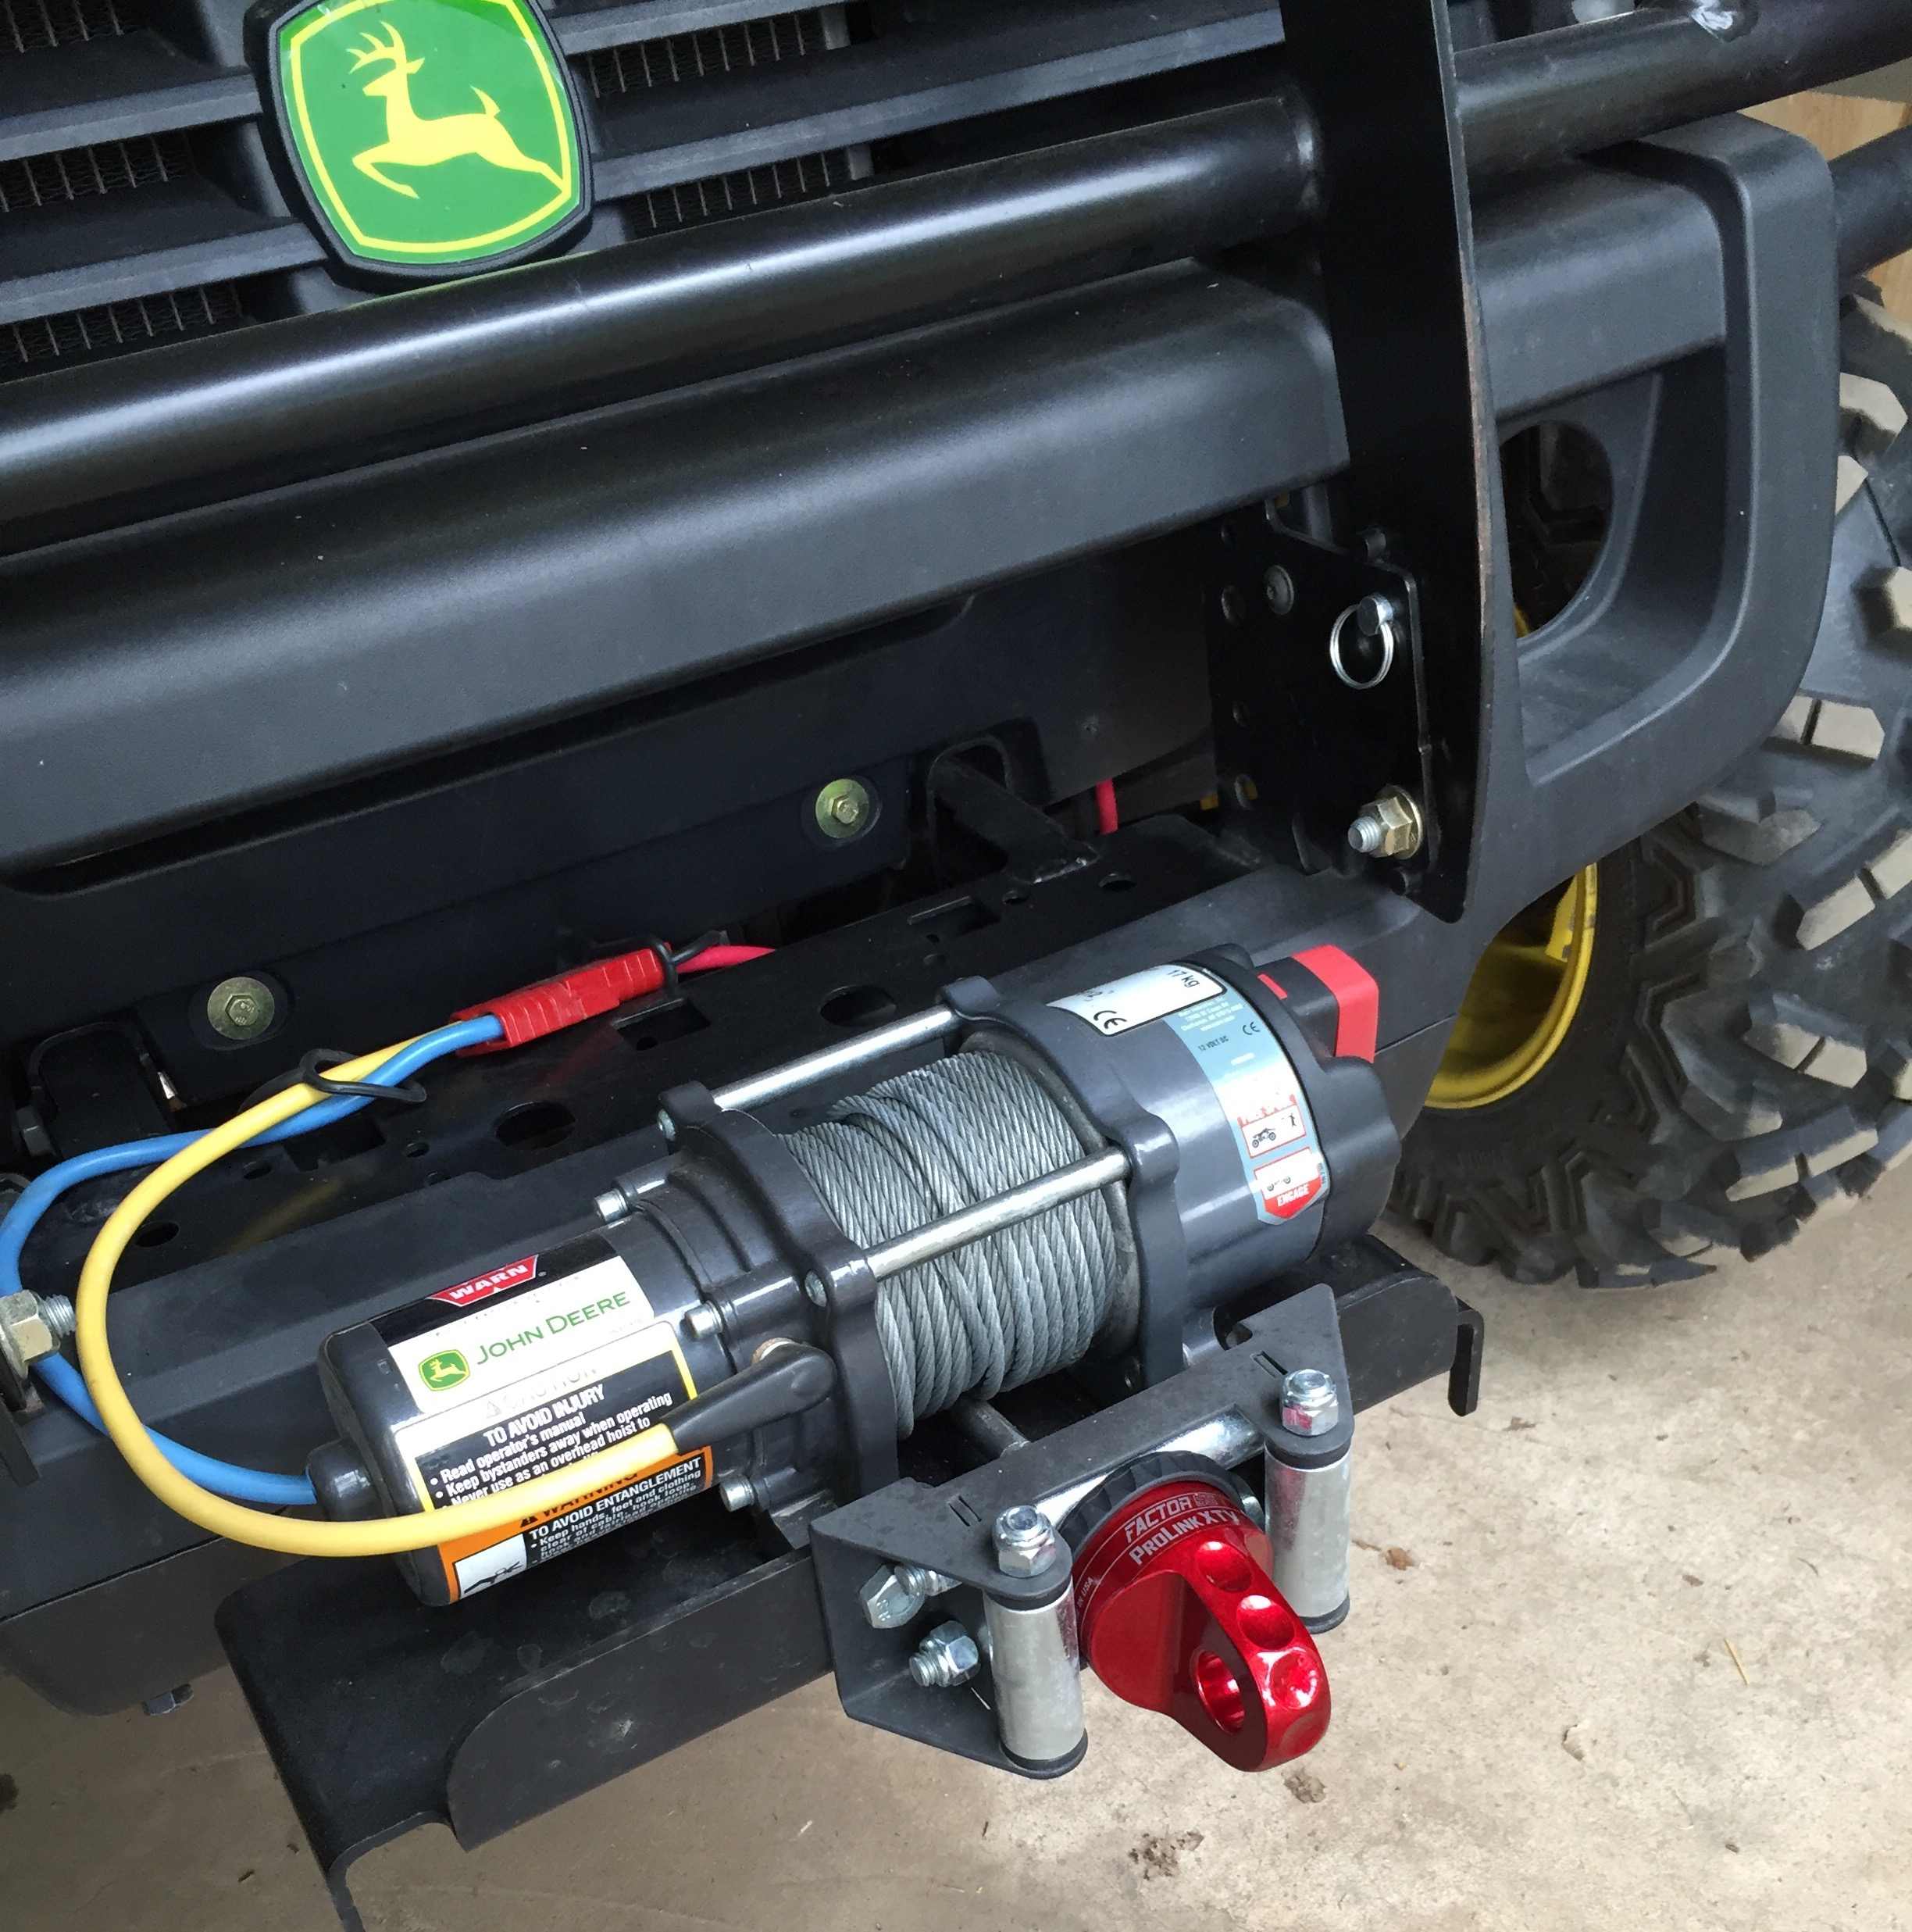 john deere 644b wiring harness diagram gator winch john deere gator forums  gator winch john deere gator forums